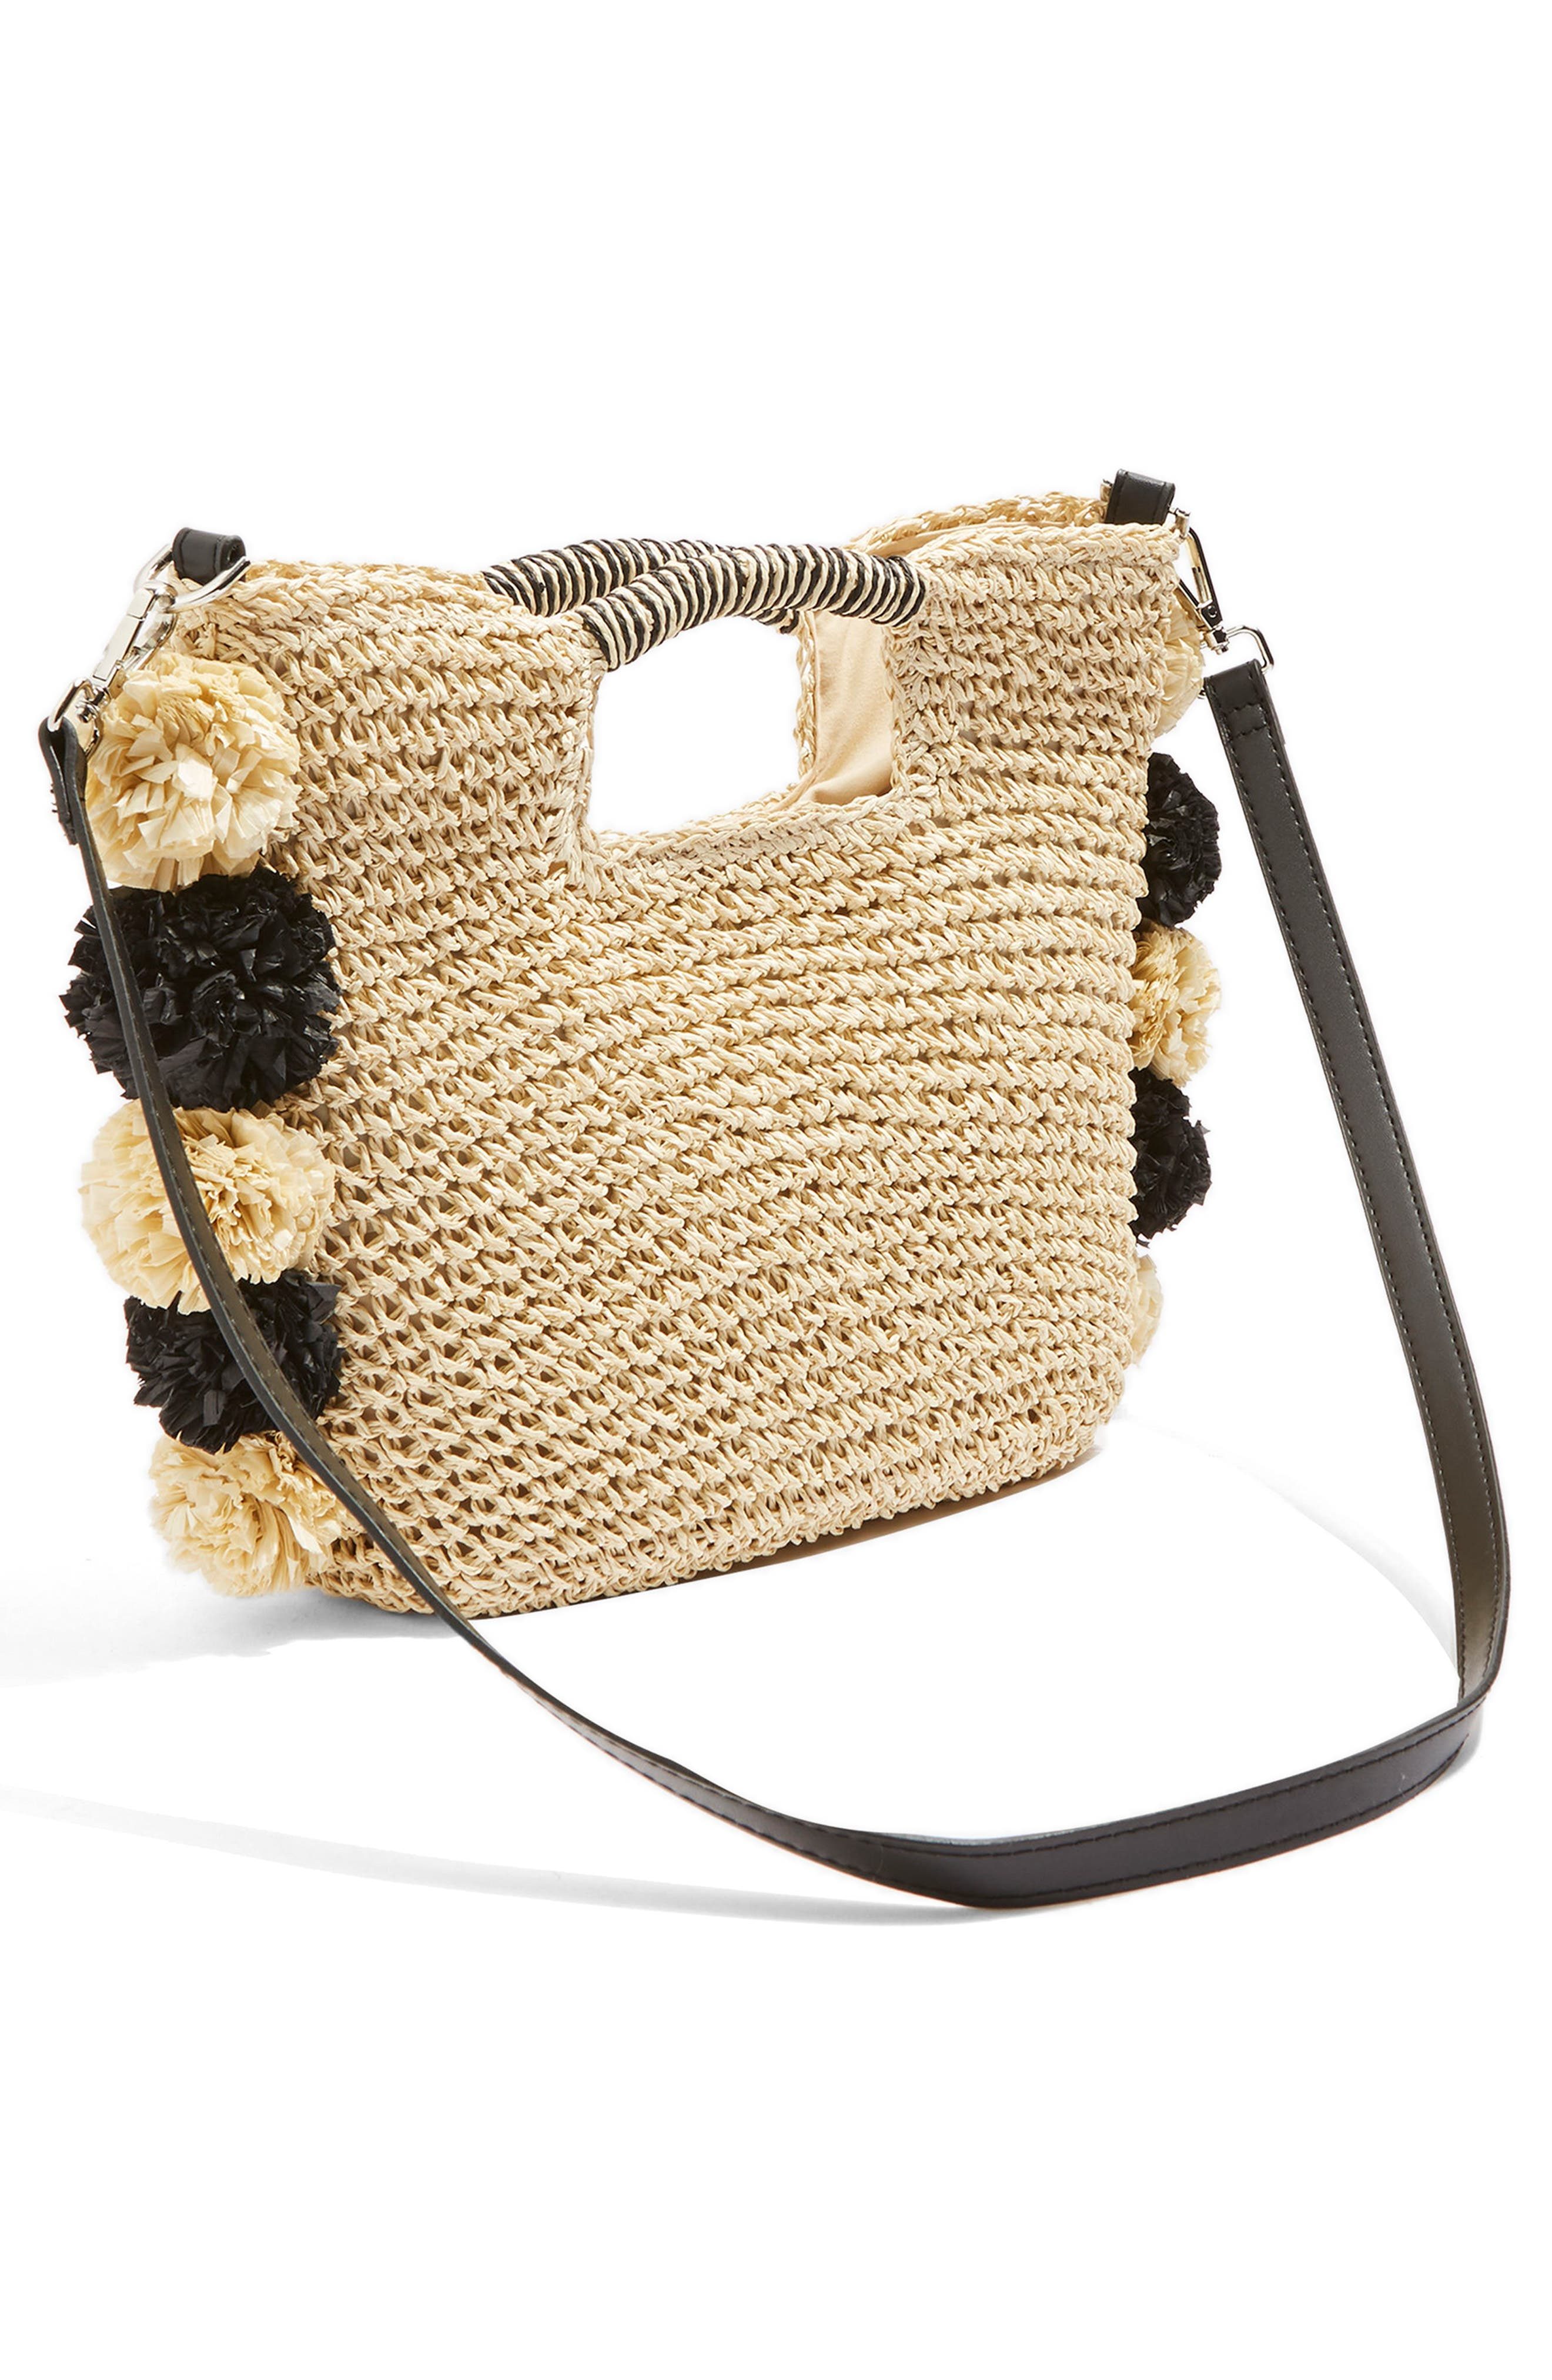 Bali Pom Straw Tote Bag,                             Alternate thumbnail 3, color,                             Nude